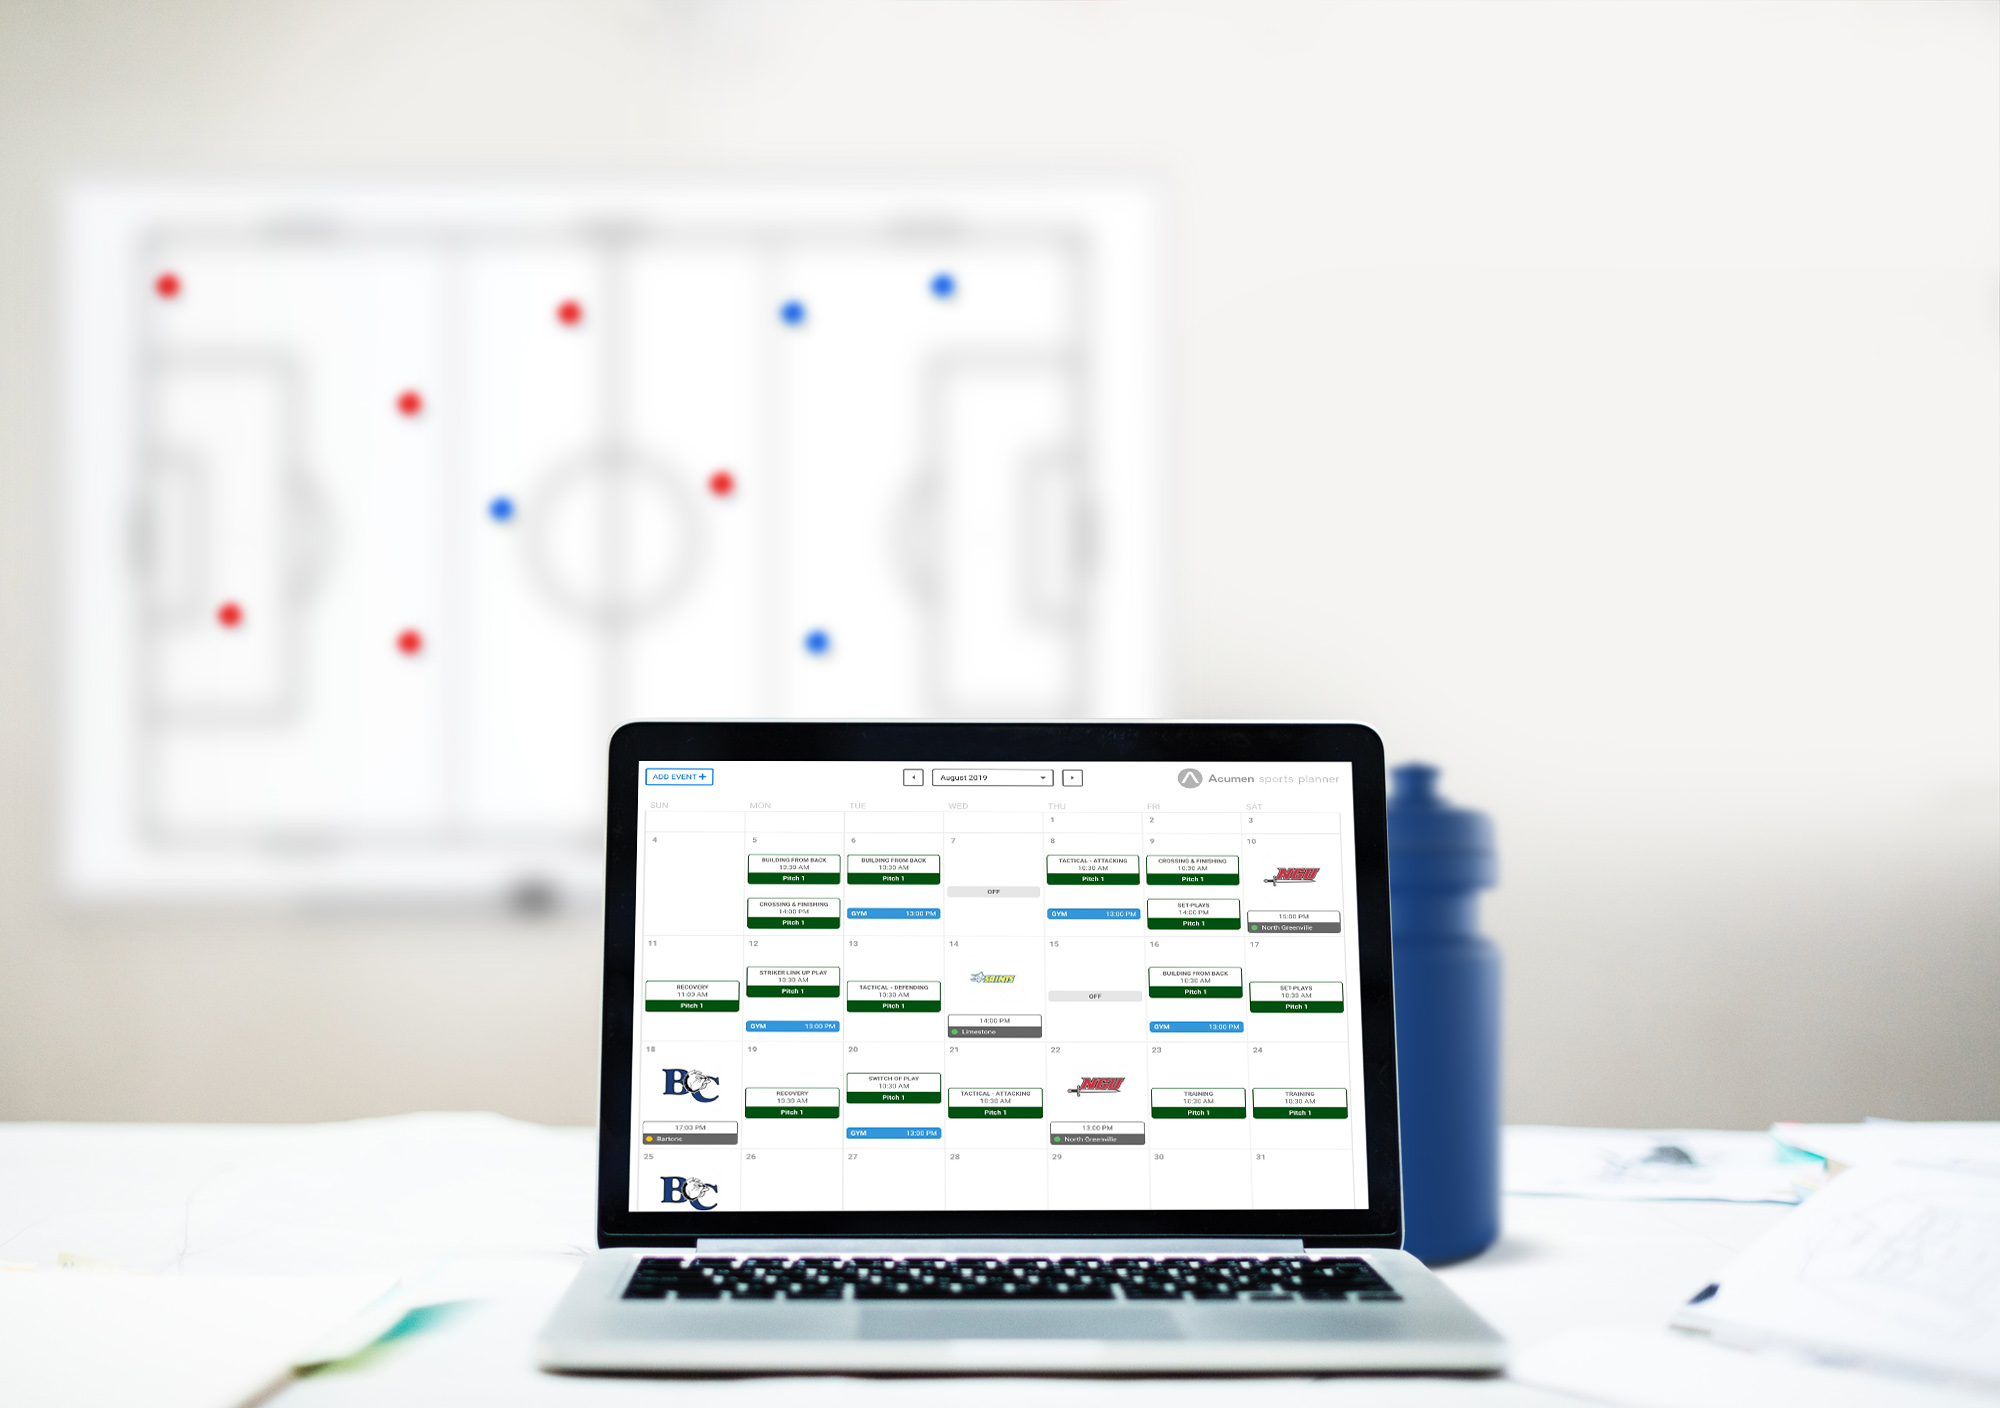 Scheduling - Be more organised and prepared by planning your training sessions, gym sessions, matches and off days. Know your training attendance pre-training, making your planning for training more meticulous and carefully thought off.